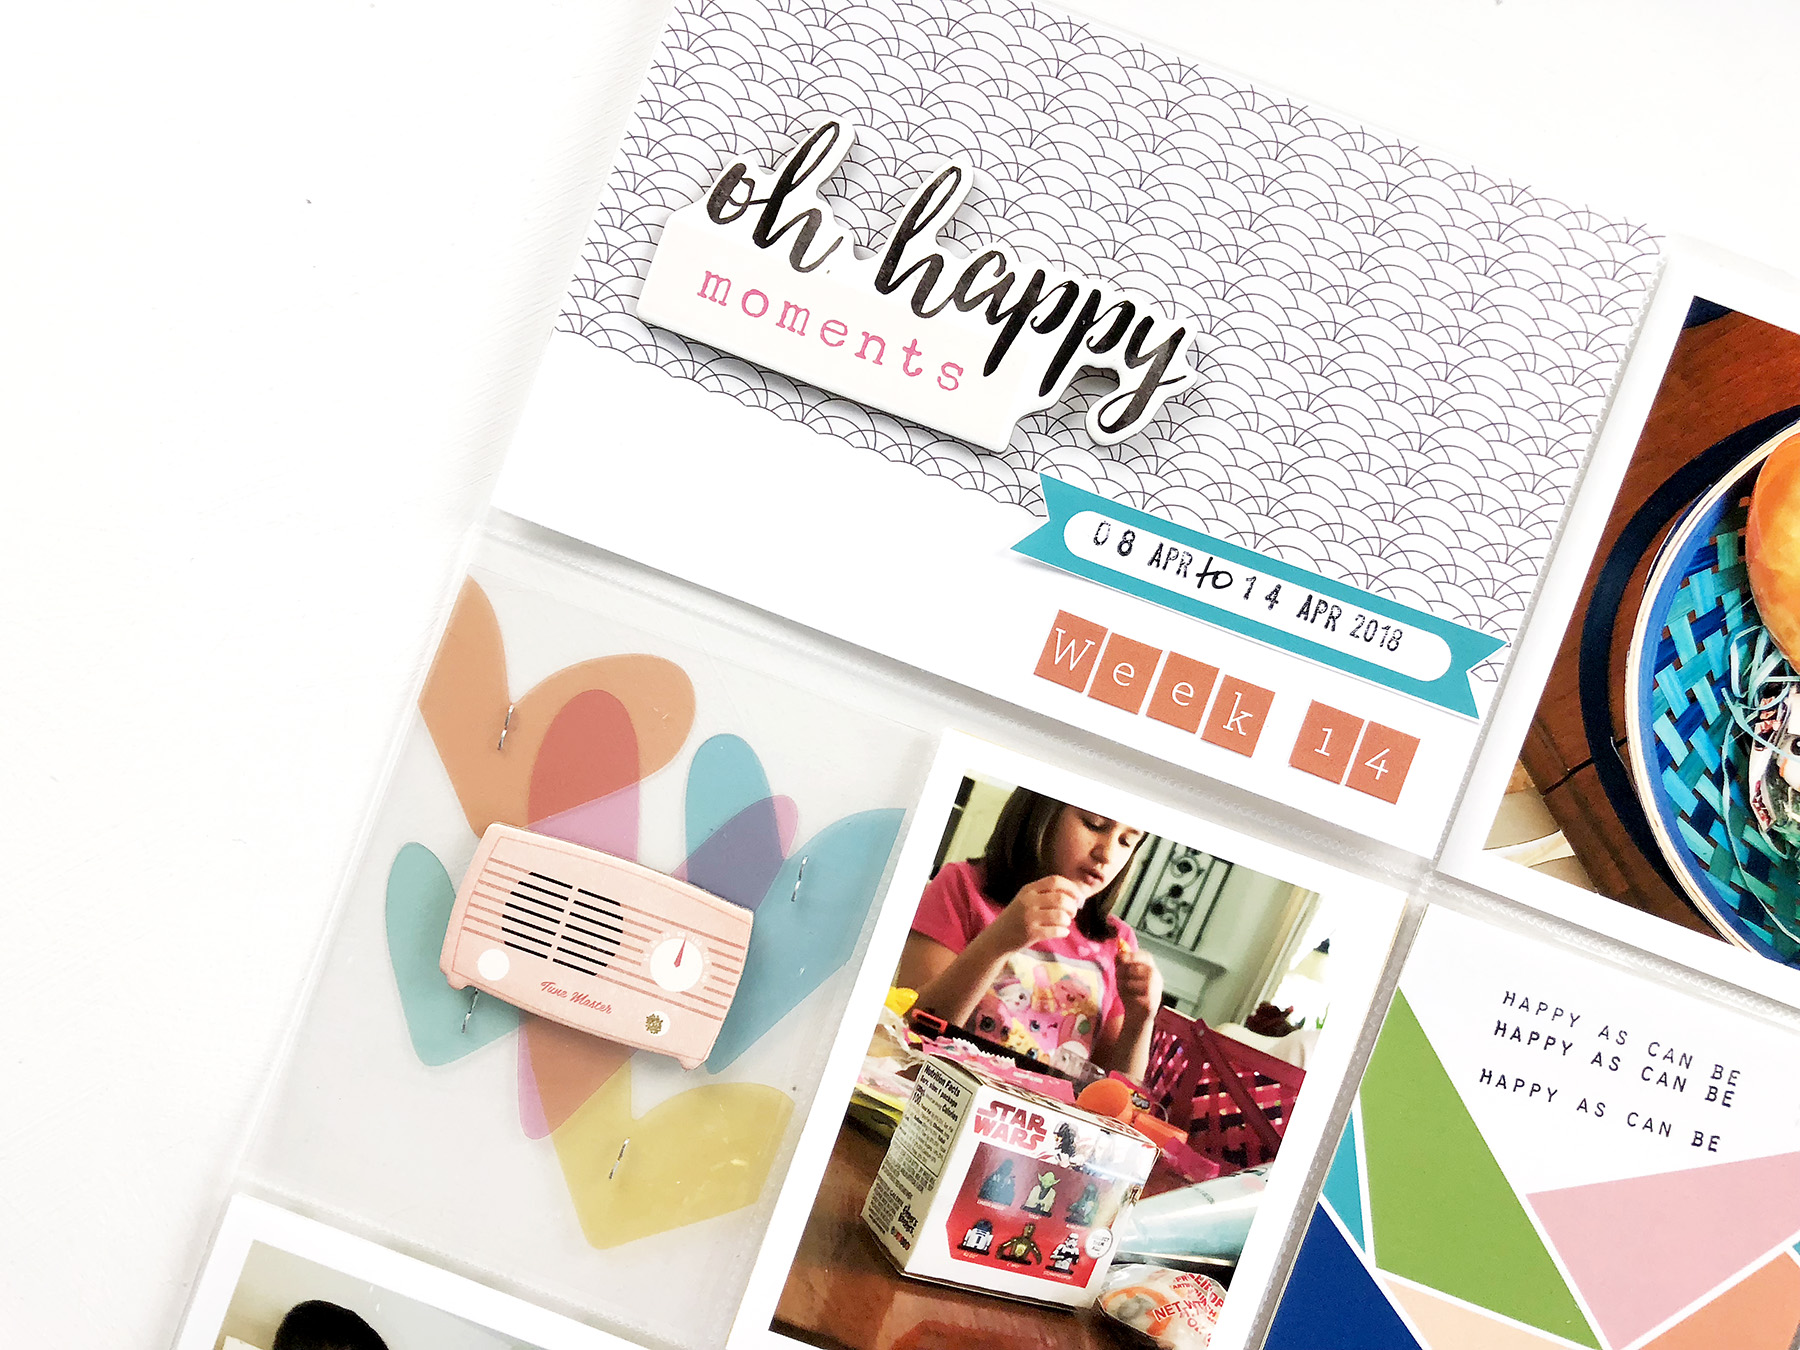 2018 Hybrid Project Life Week 14A ft. The Lilypad MPM Wander June Kit